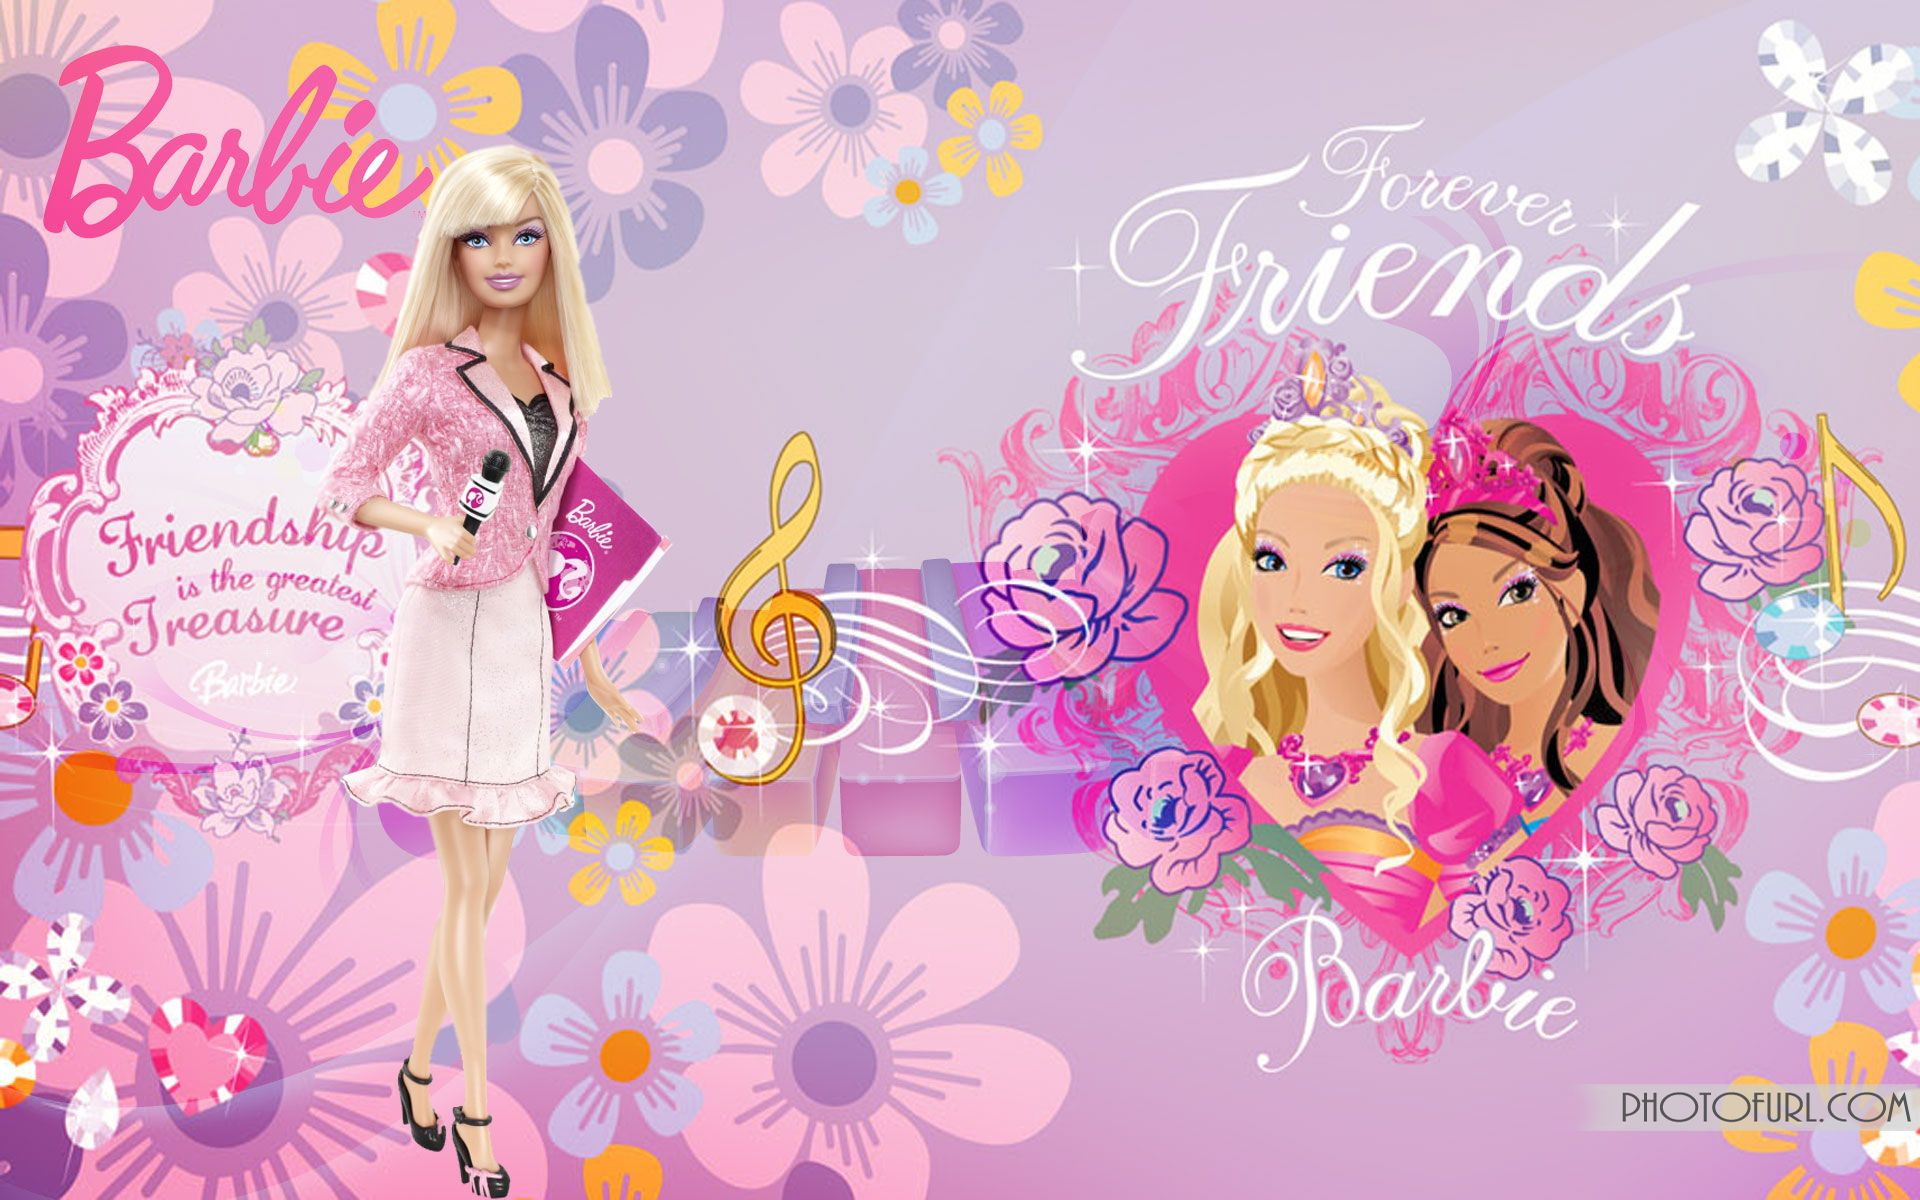 Barbie wallpaper google search avatars and backgrounds barbie wallpaper google search voltagebd Images